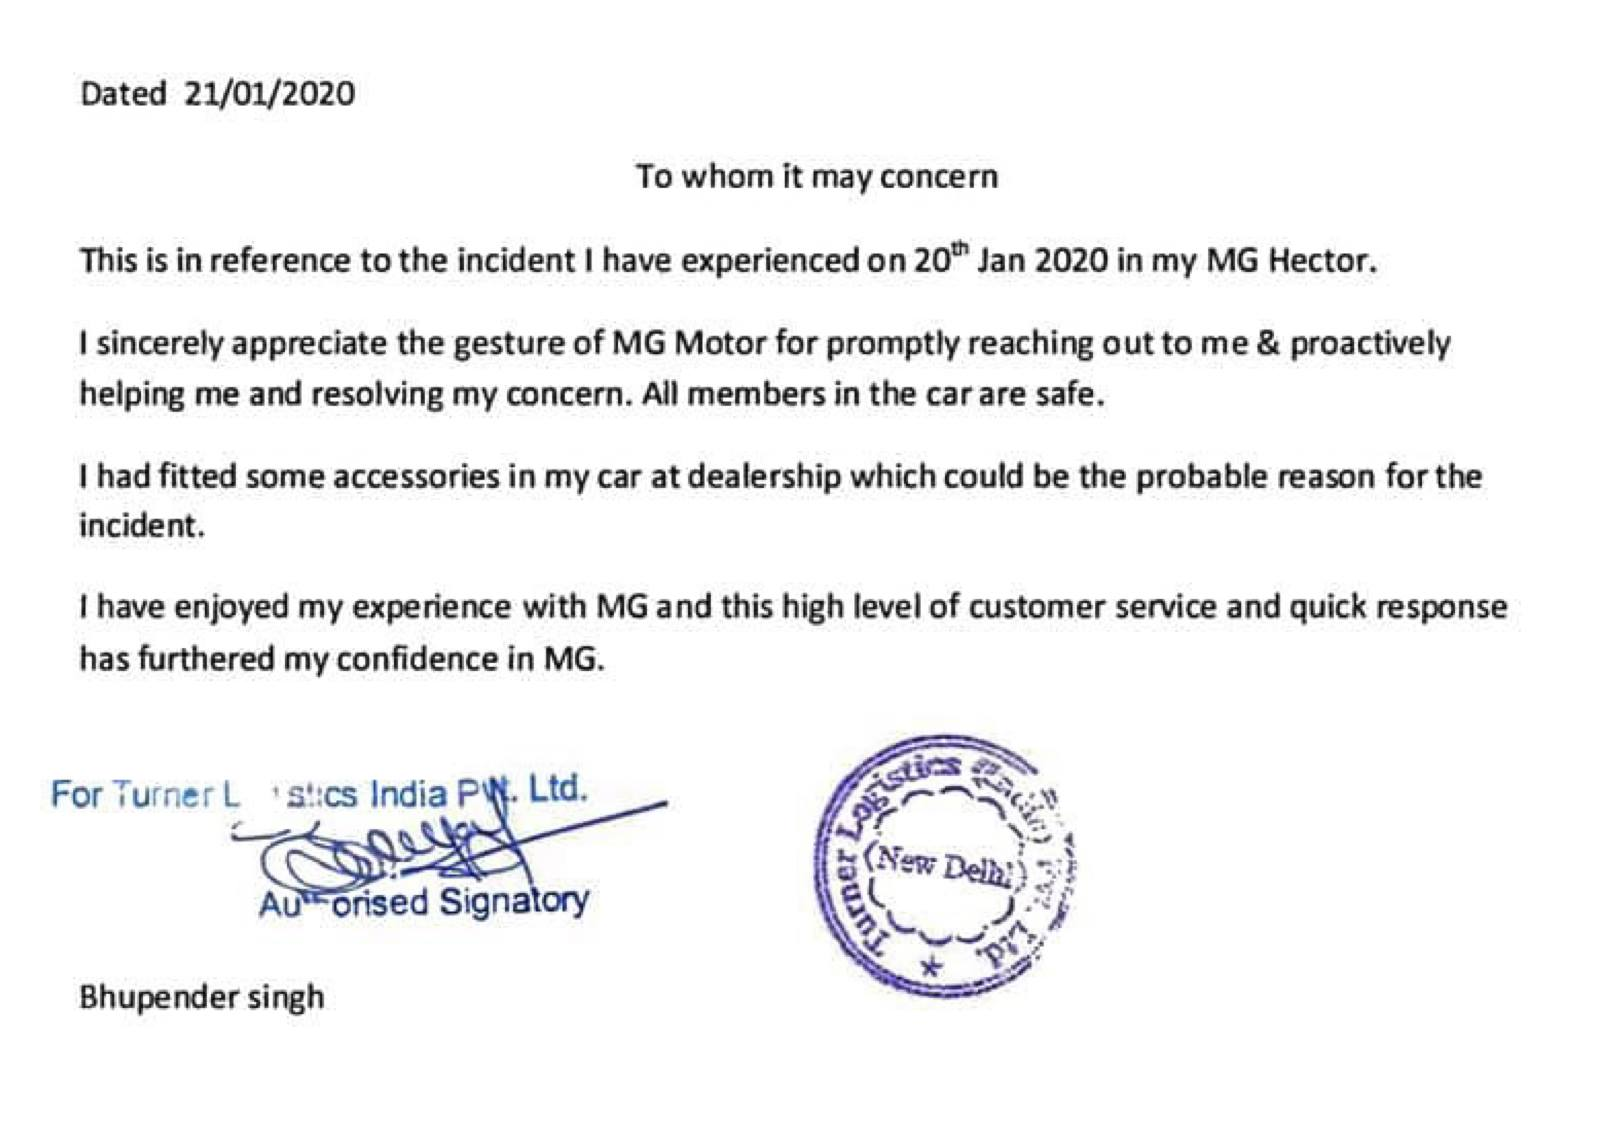 MG Hector fire incident